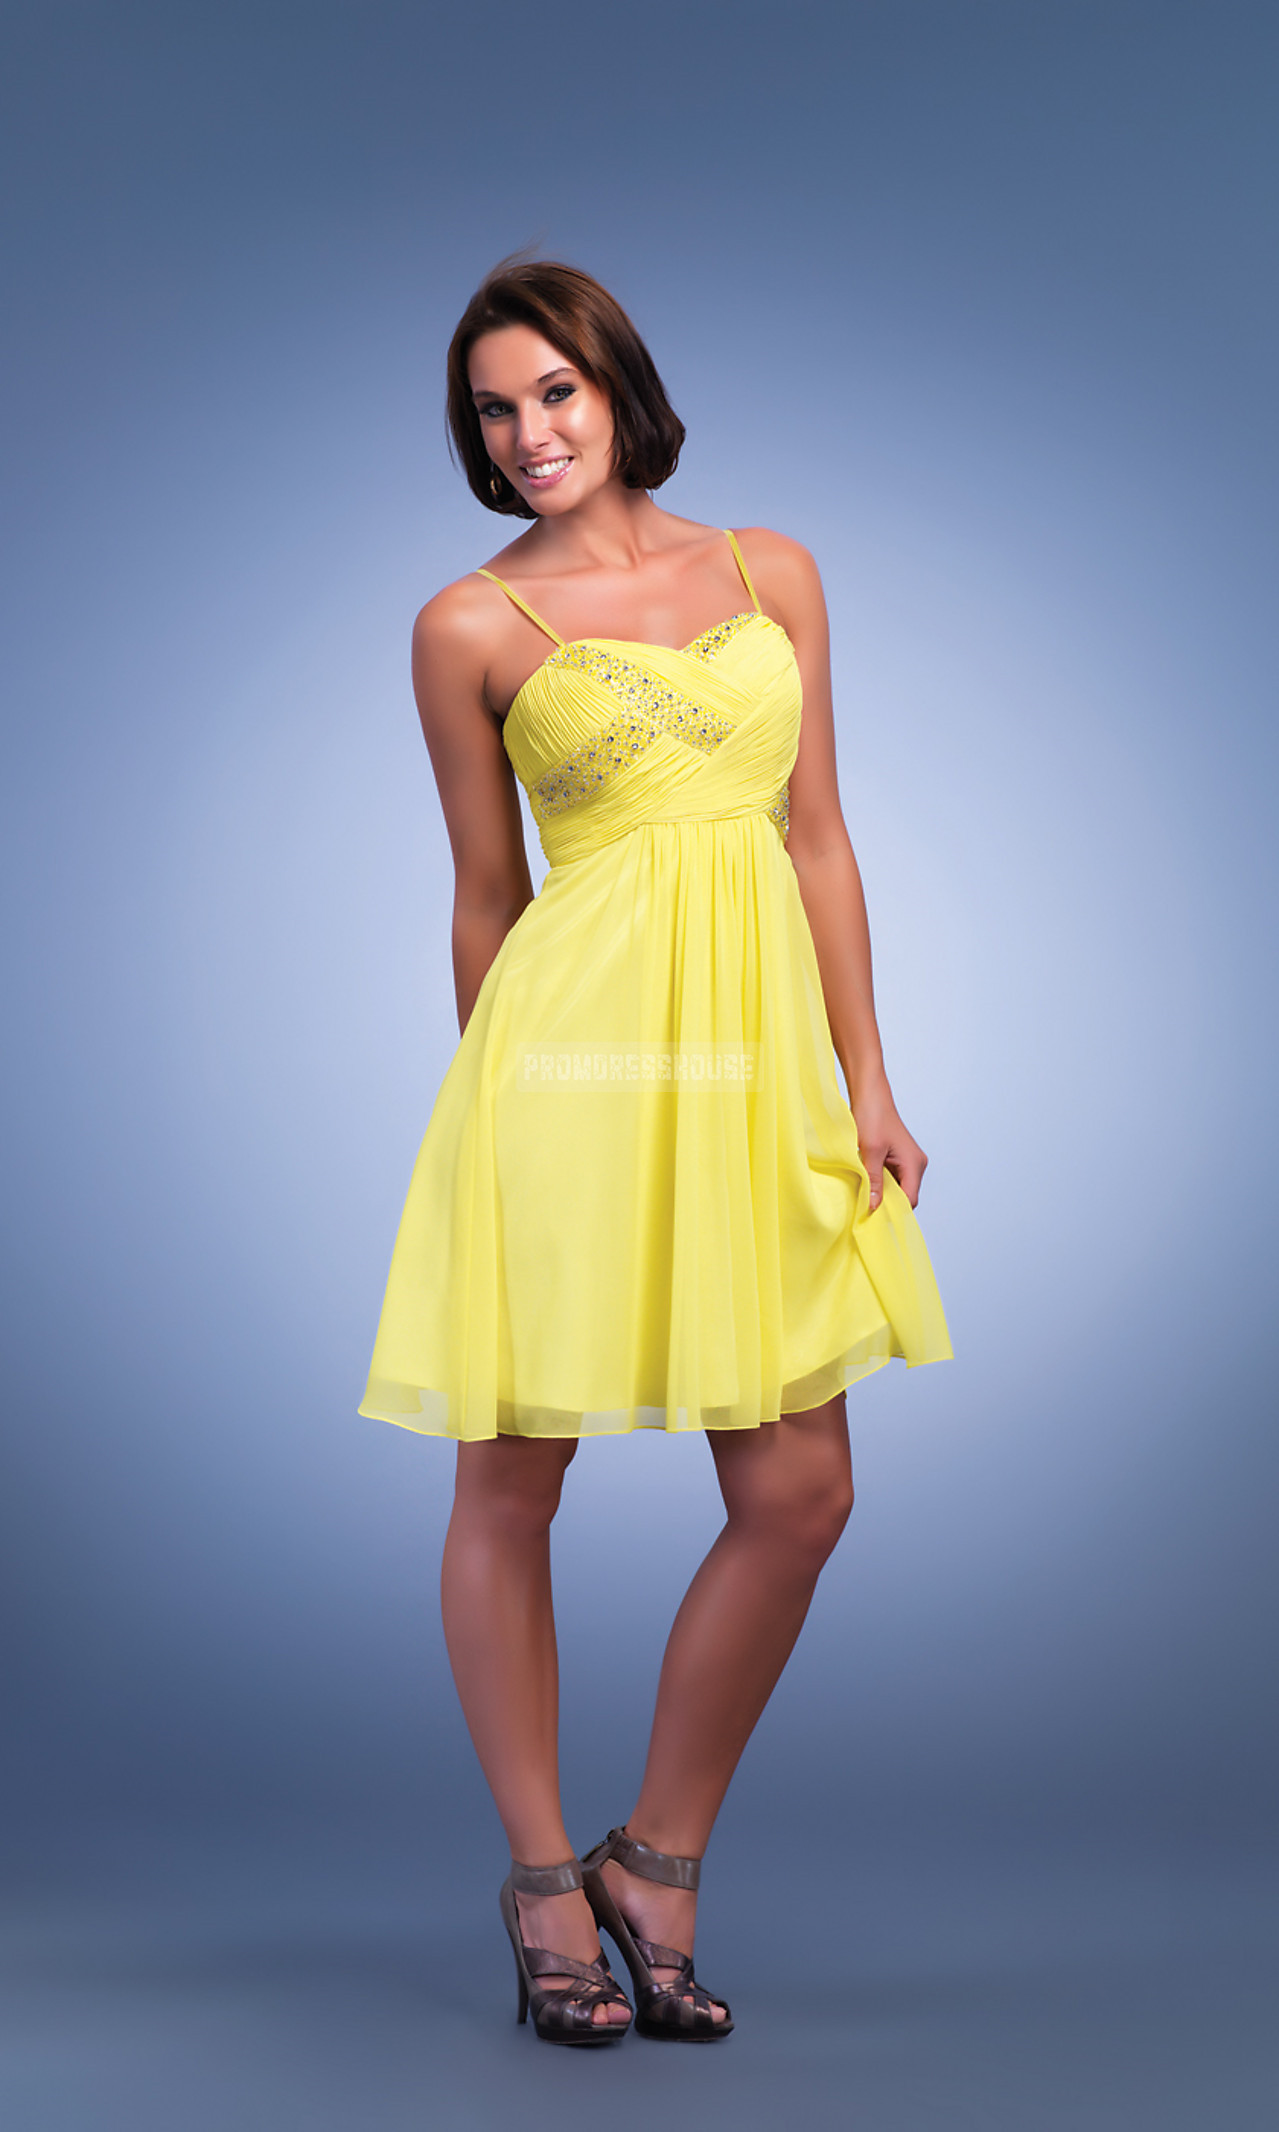 A-line Criss Cross Bodice Spaghetti Straps Daffodil Cocktail Dress - Promdresshouse.com